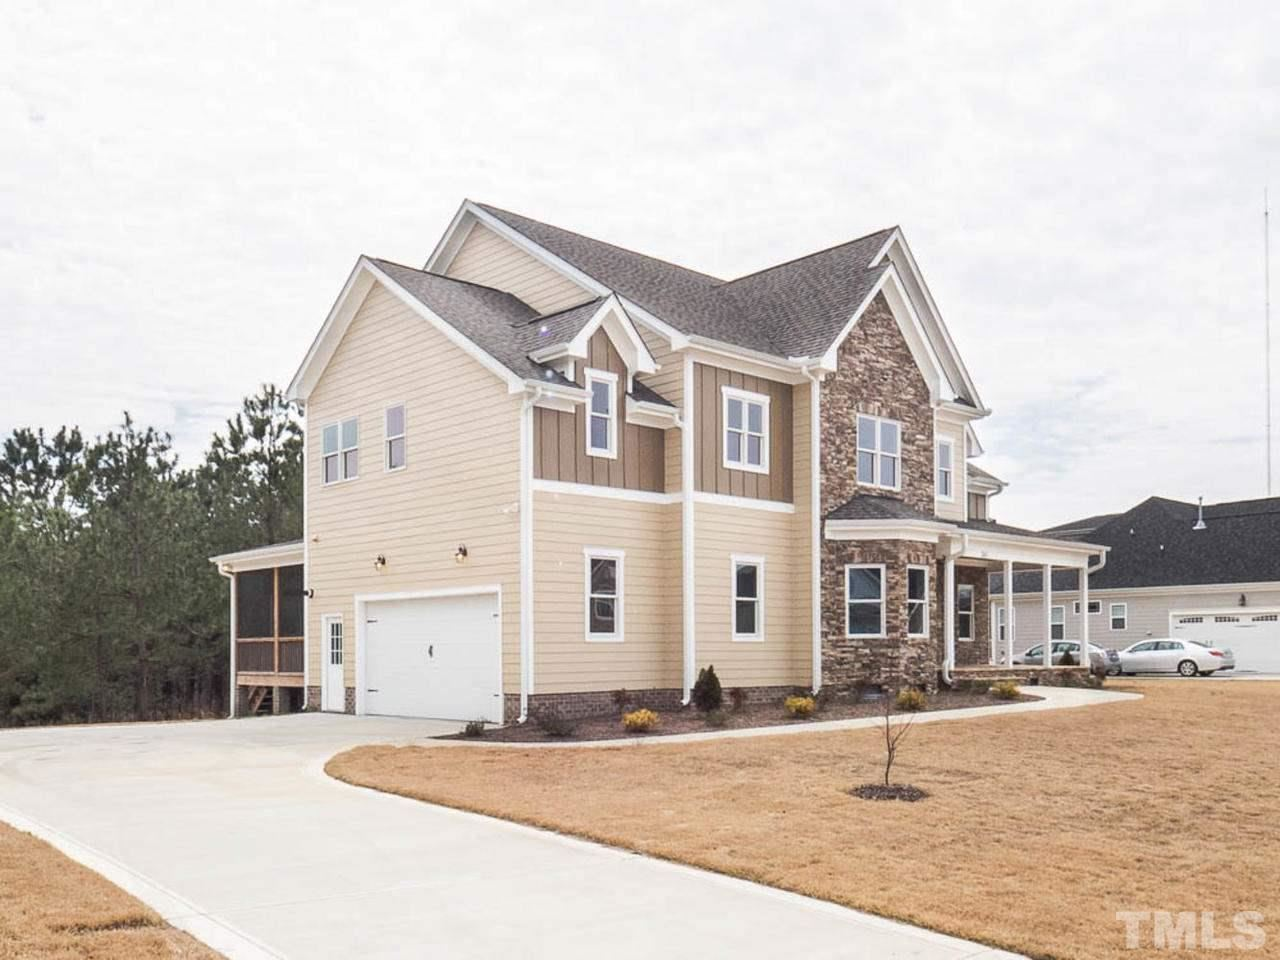 Photo of 261 Character Drive, Rolesville, NC 27571 (MLS # 2307999)